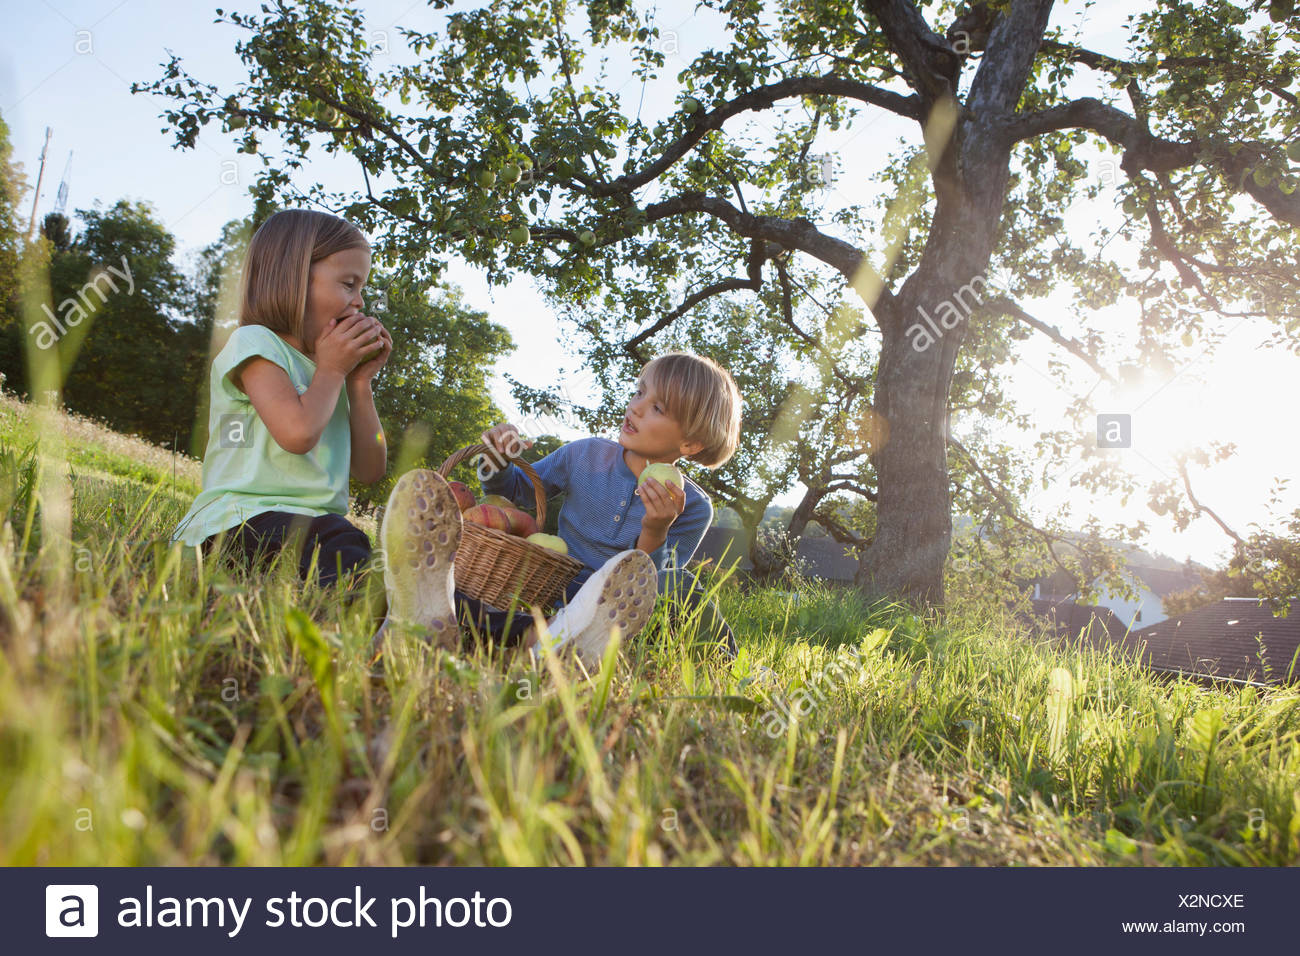 Boy and girl eating apples in meadow - Stock Image